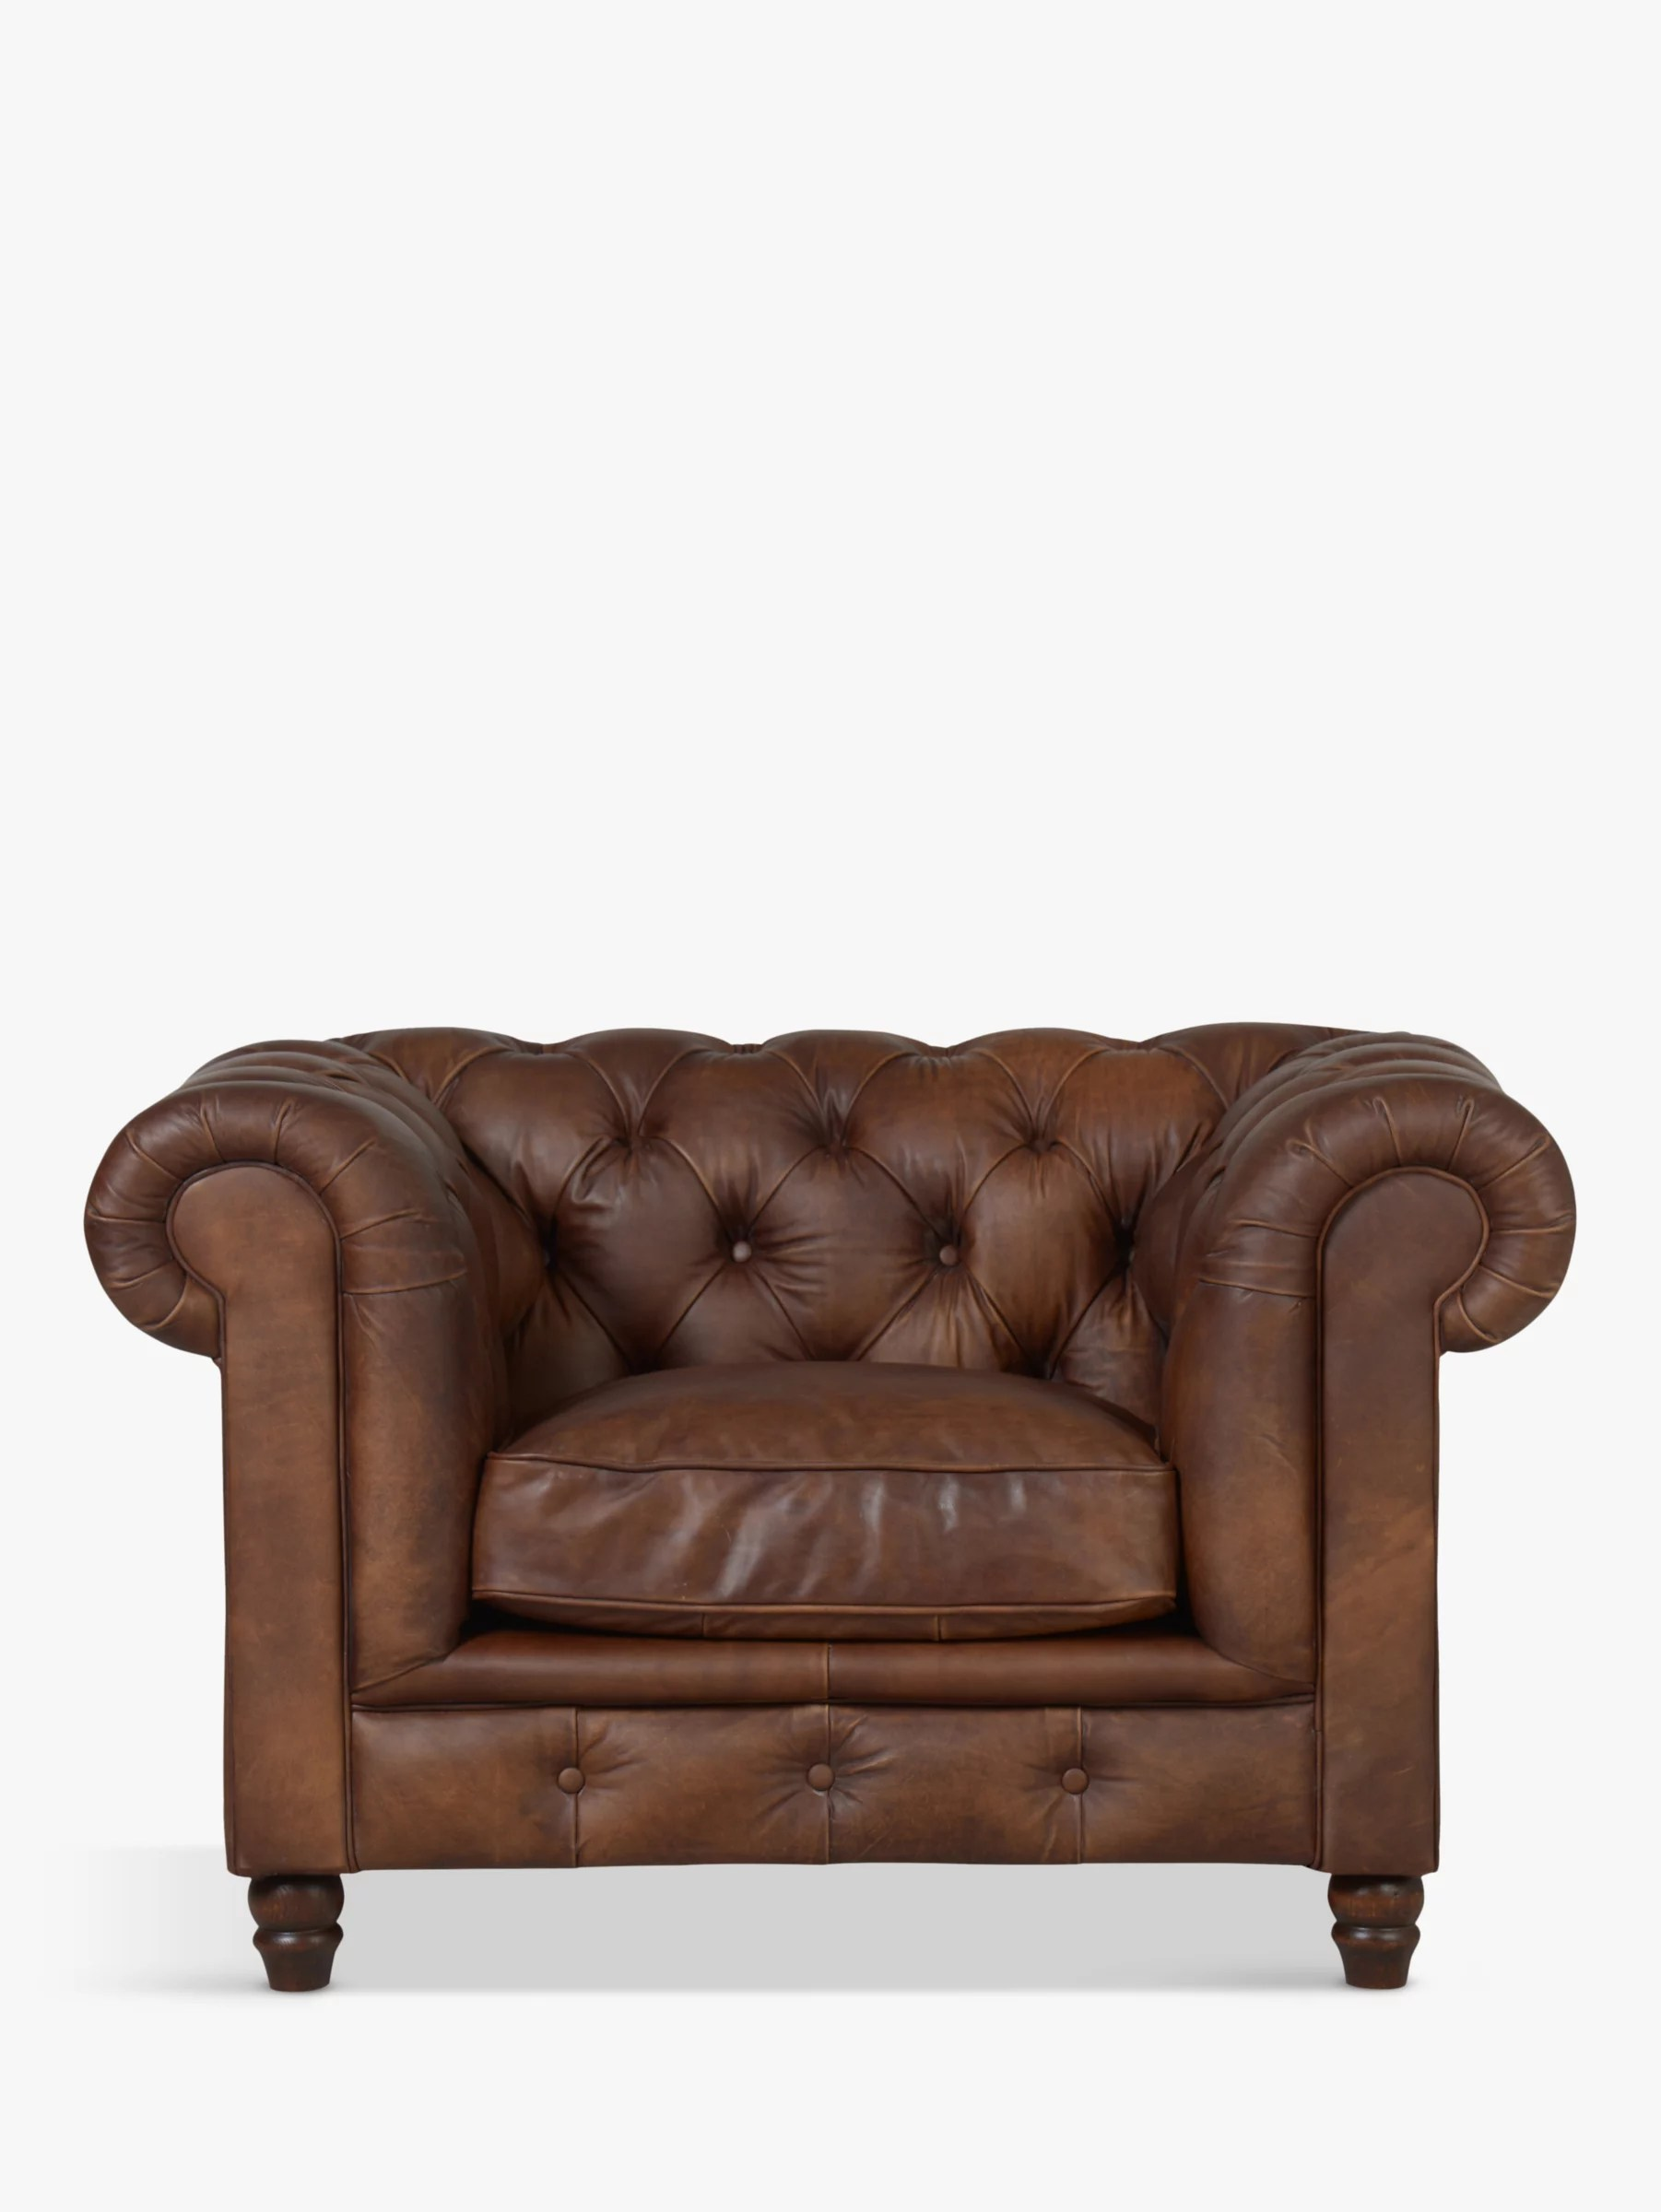 chesterfield sofa london second hand manufacturers in south wales sofas leather john lewis halo earle aniline armchair antique whisky